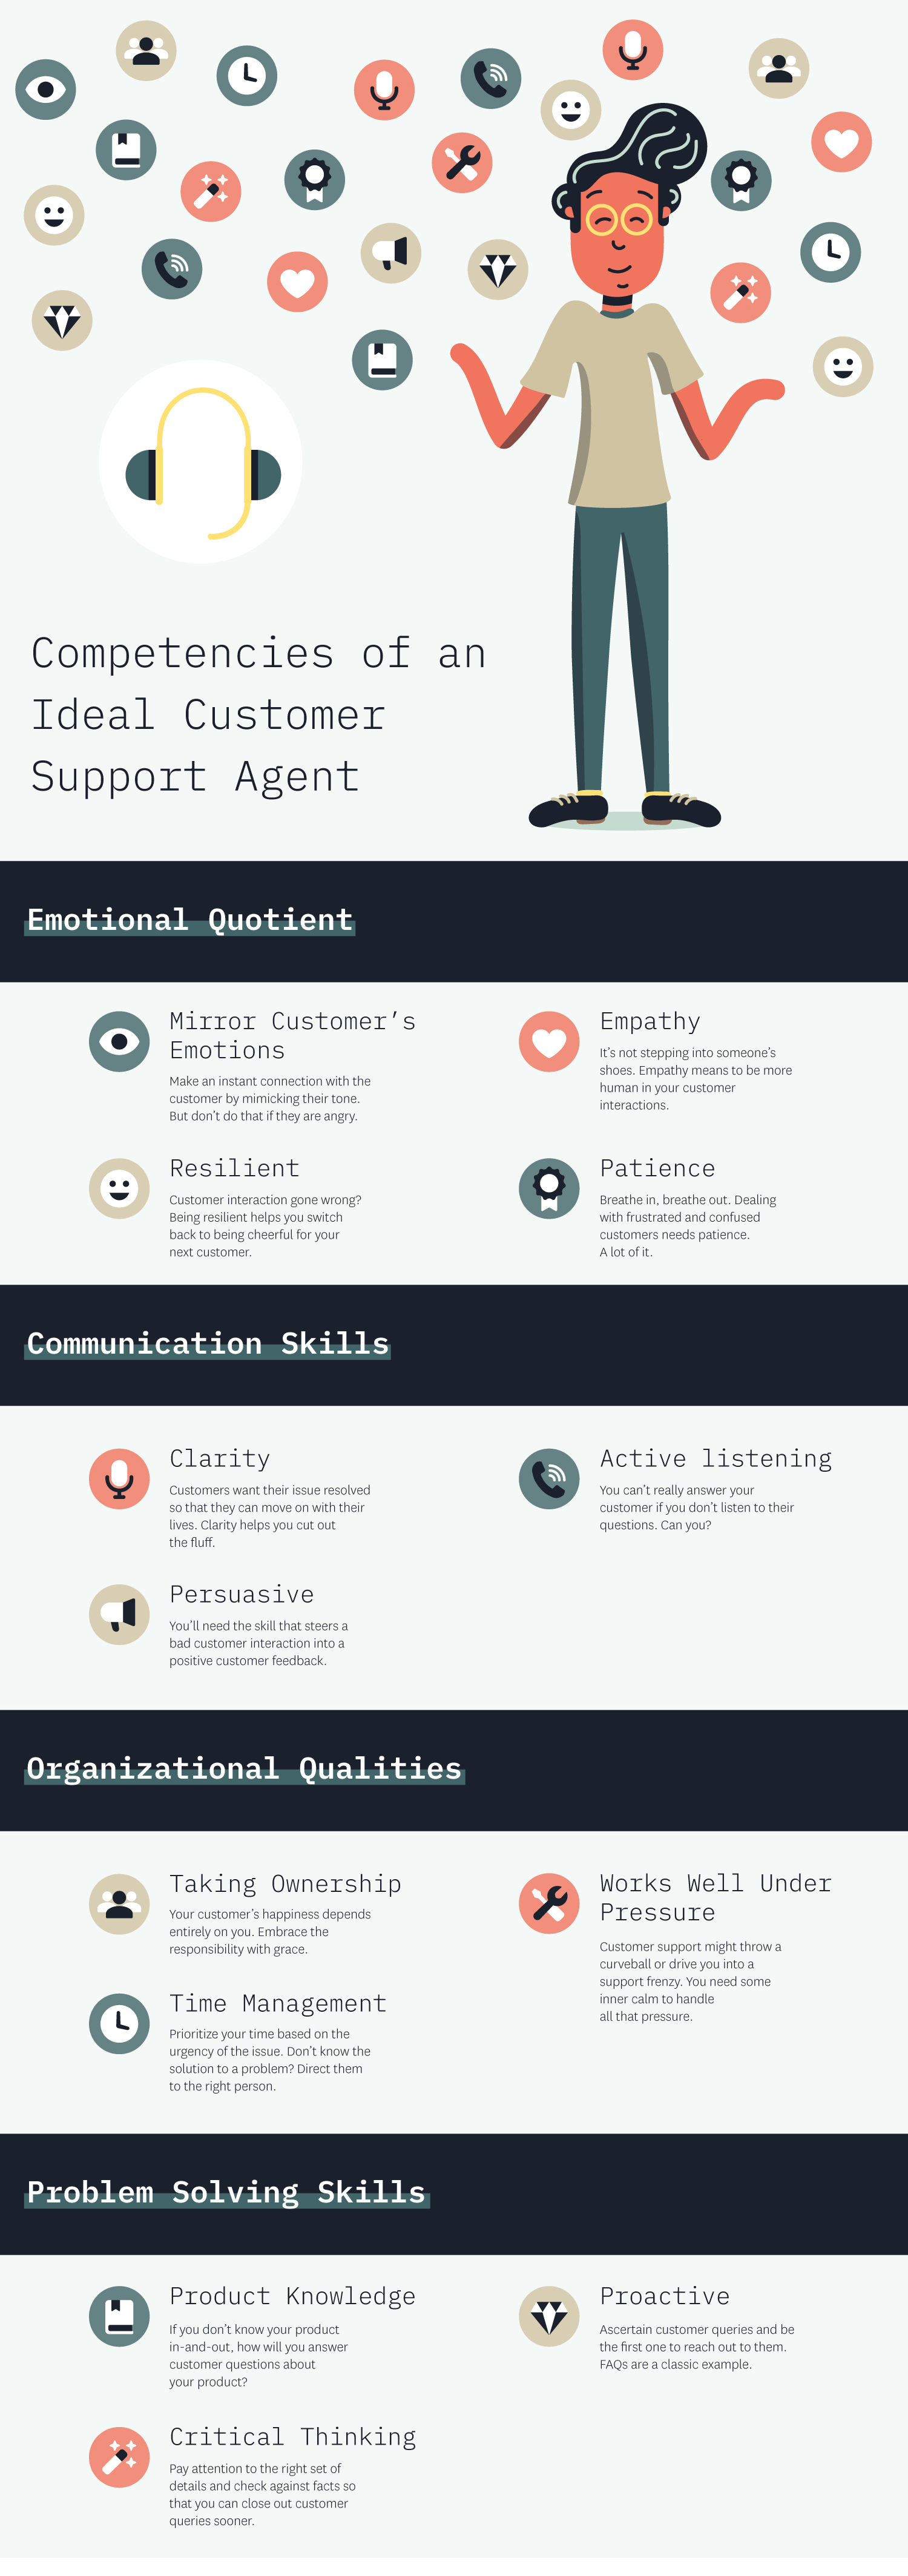 Customer support competencies